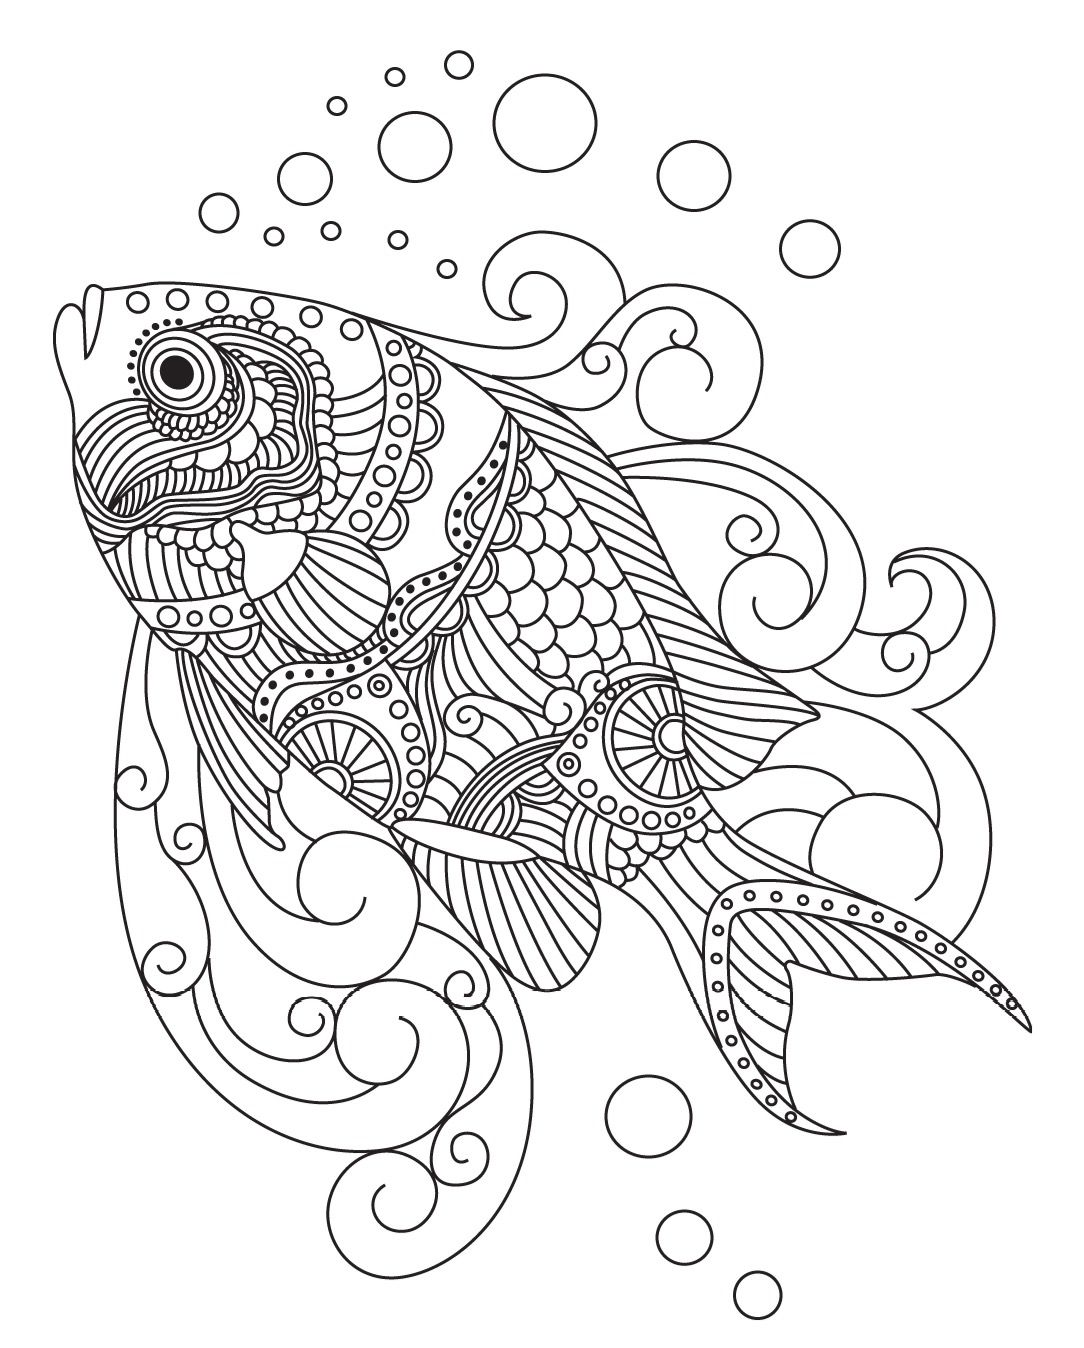 - Fish Colorish: Coloring Book For Adults Mandala Relax By